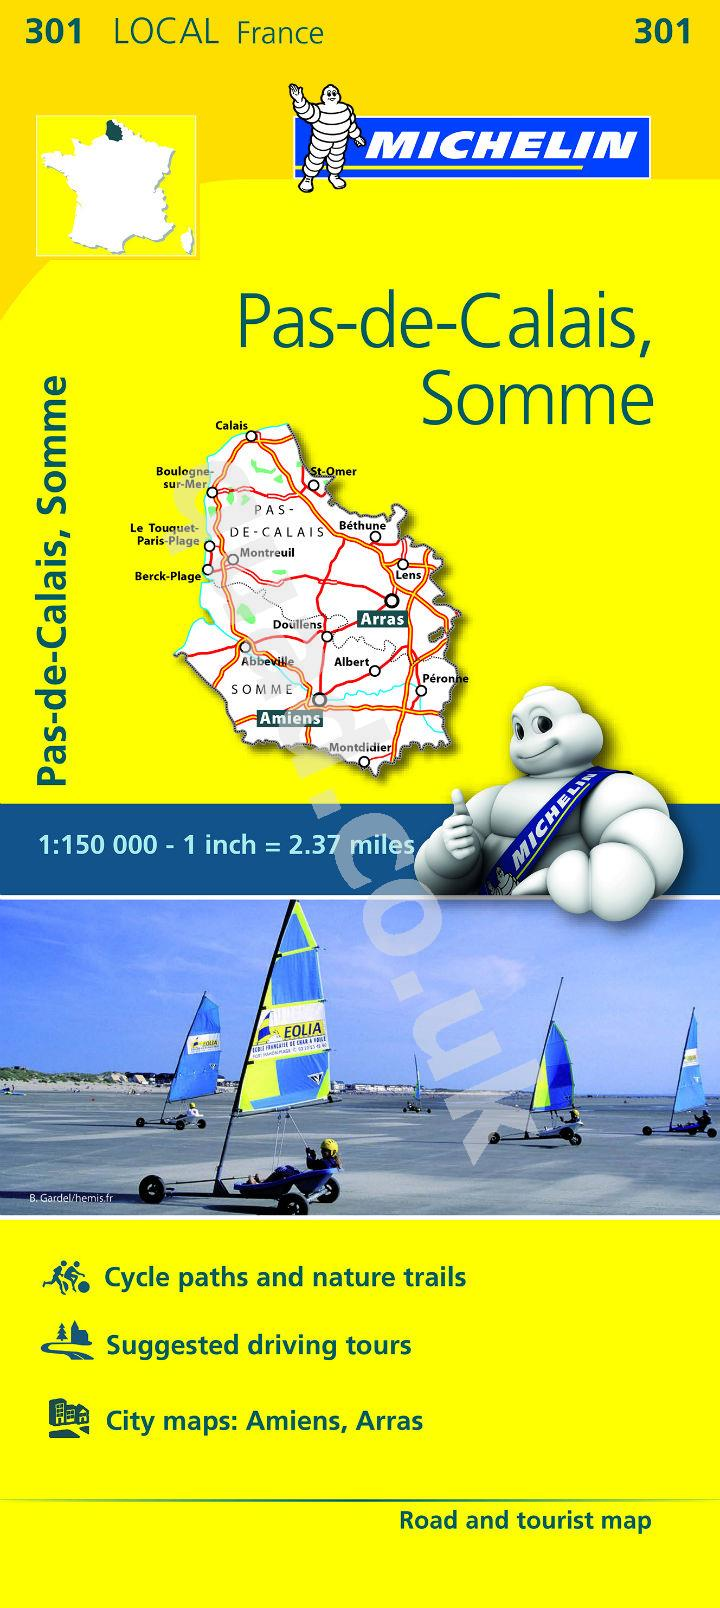 Michelin  Local Map - Pas-de-Calais, Somme (France)